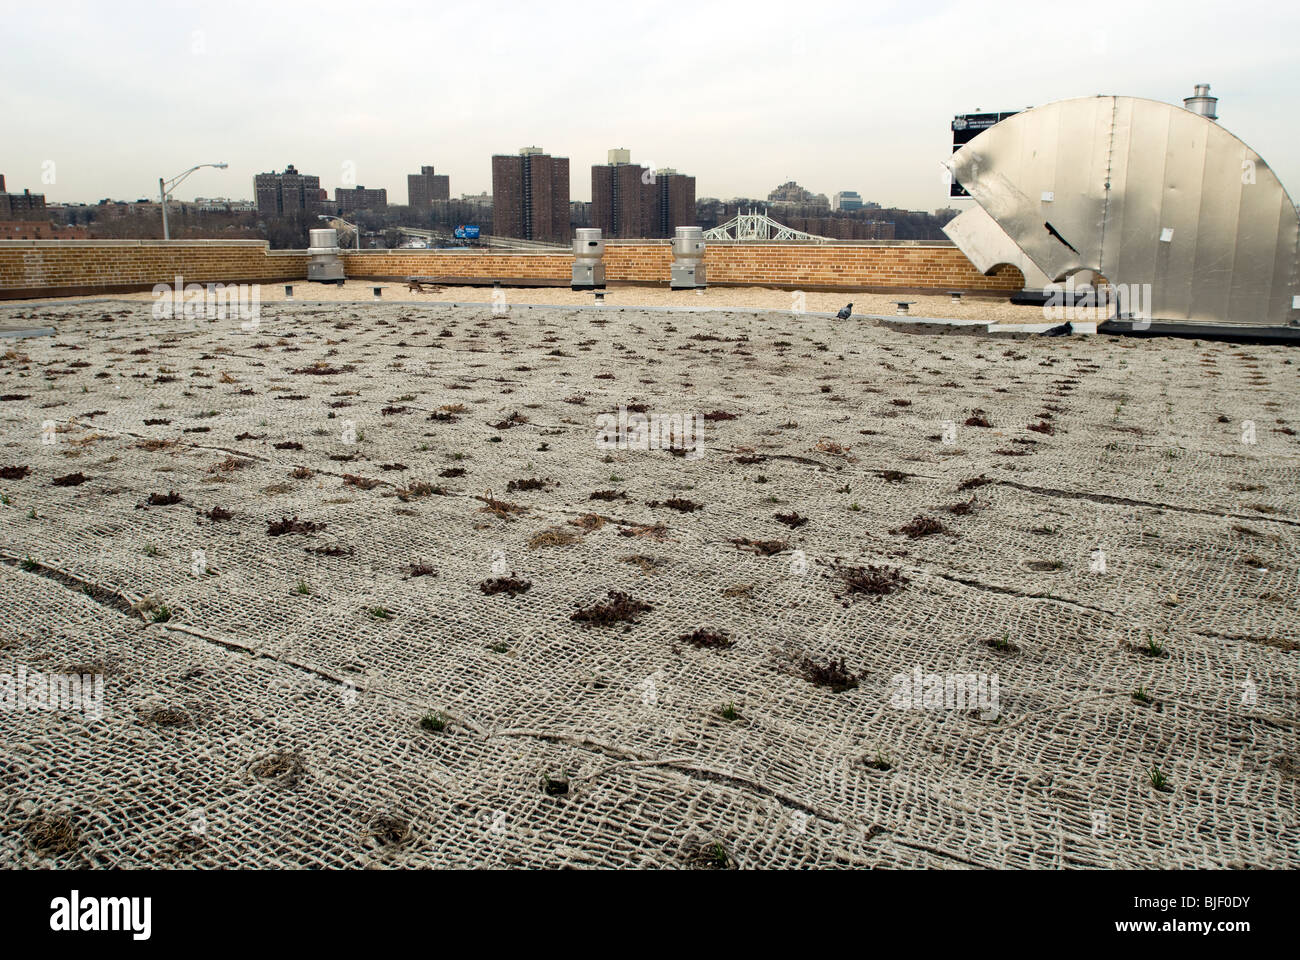 The newly installed green roof of the Power House building in Mill Pond Park in the New York borough of the Bronx Stock Photo